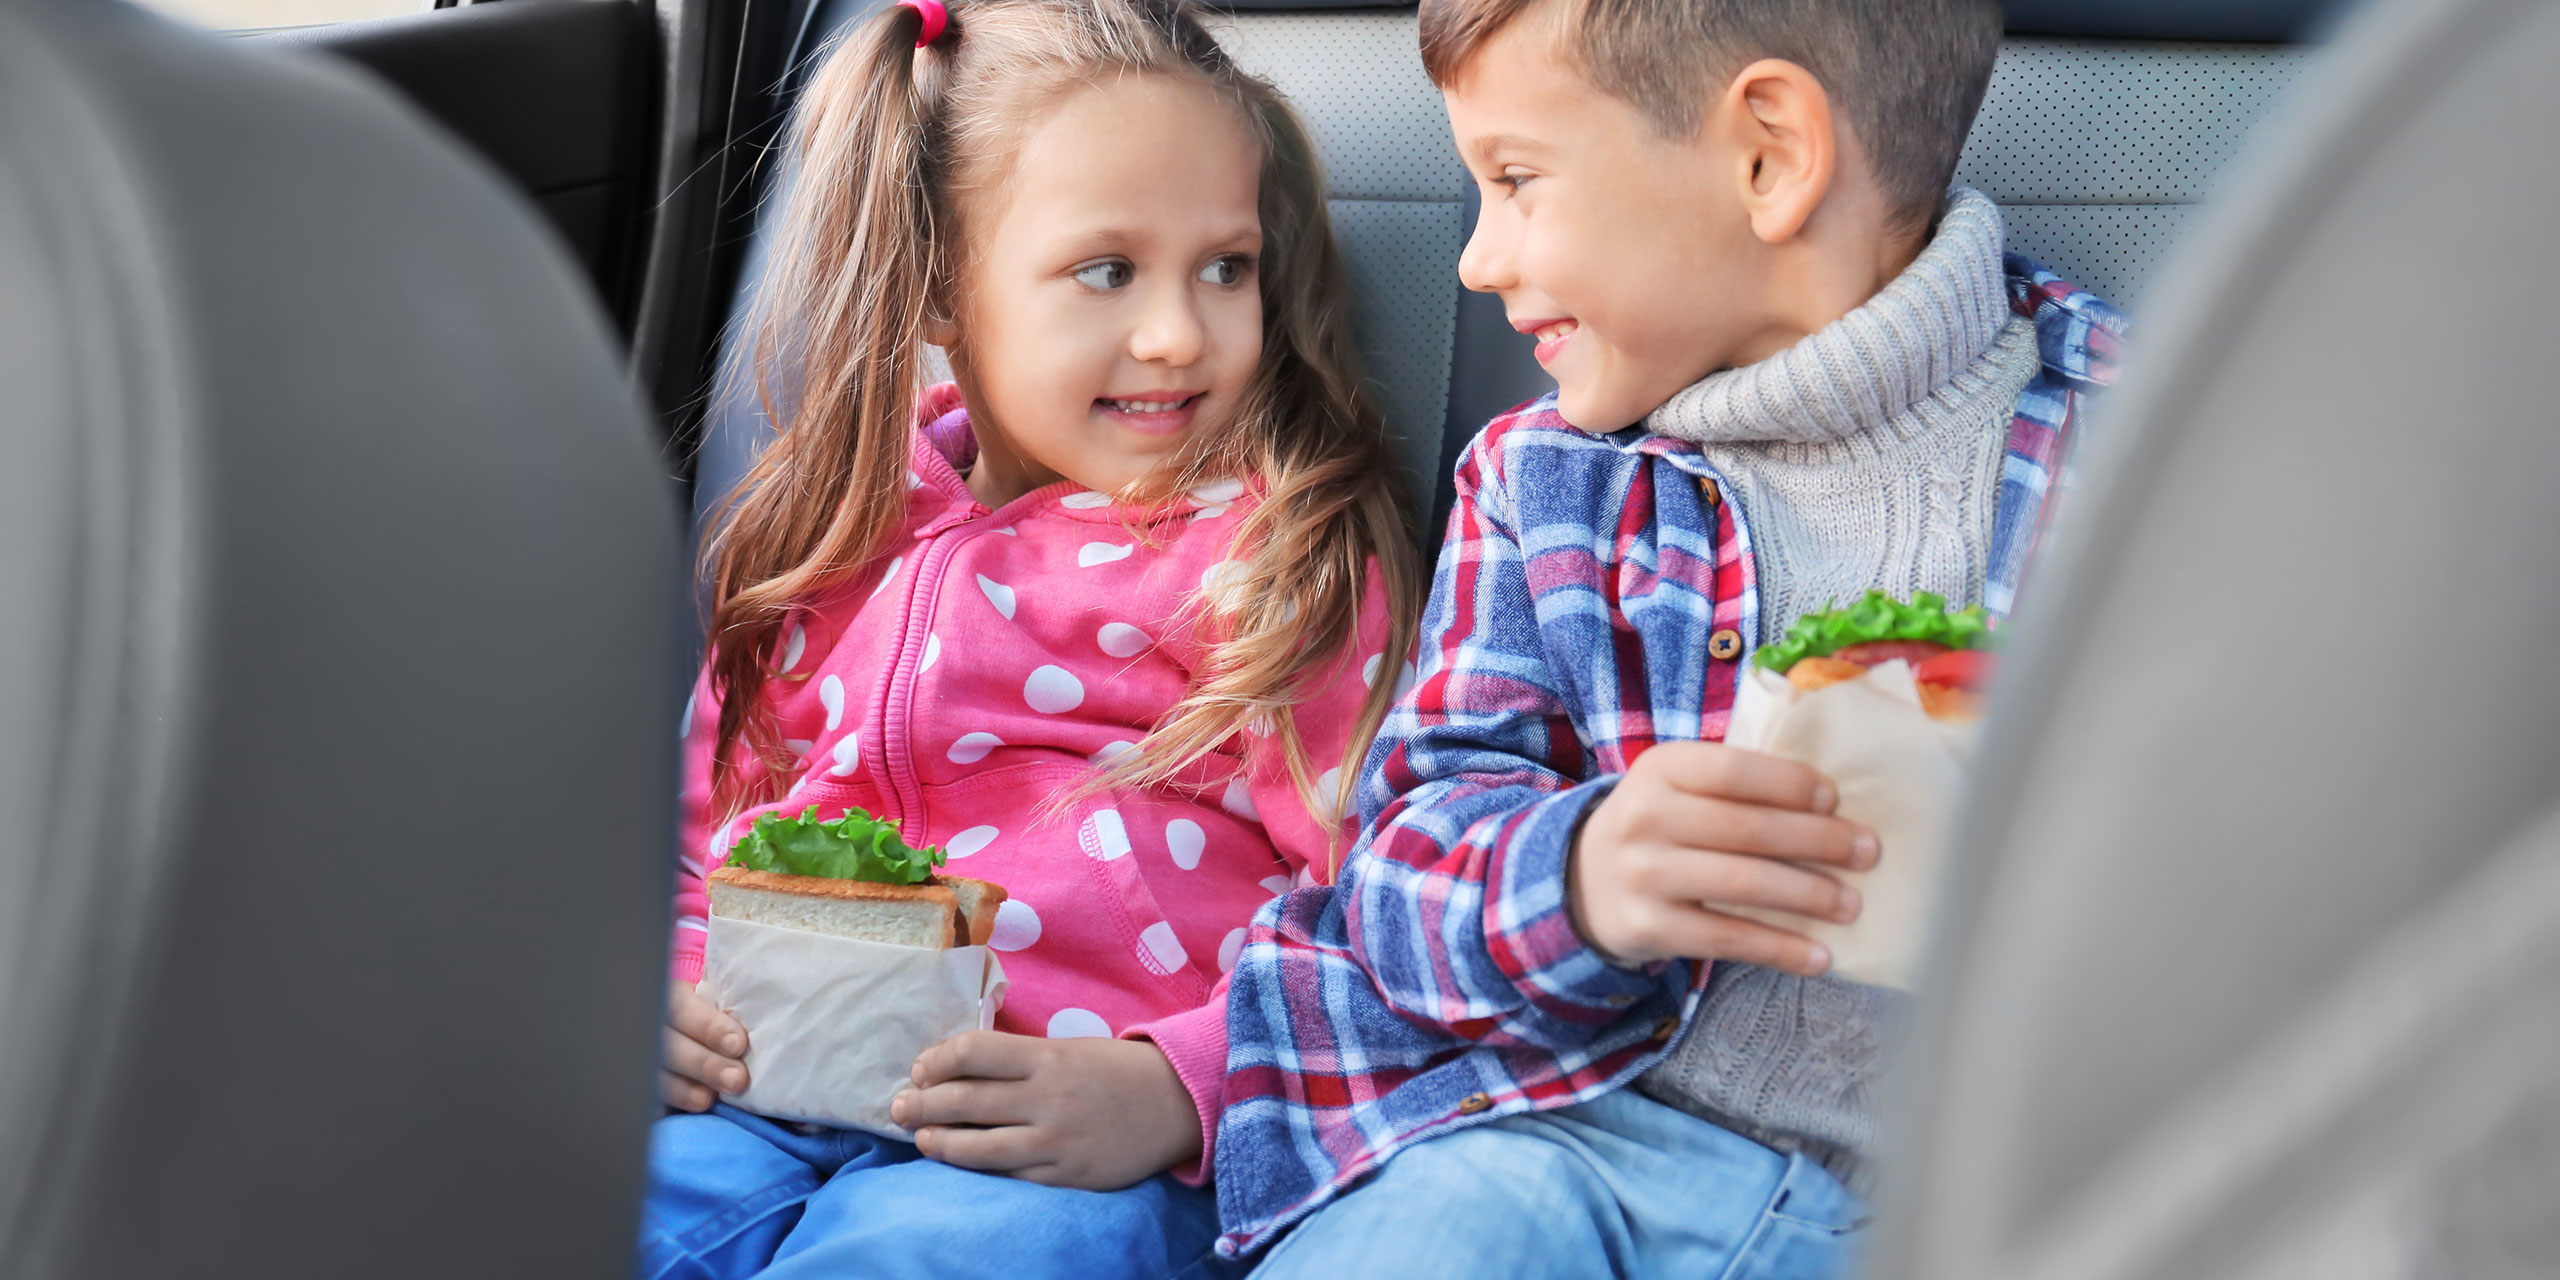 13 Healthy Road Trip Snacks Your Kids Will Actually Enjoy 2020 Family Vacation Critic